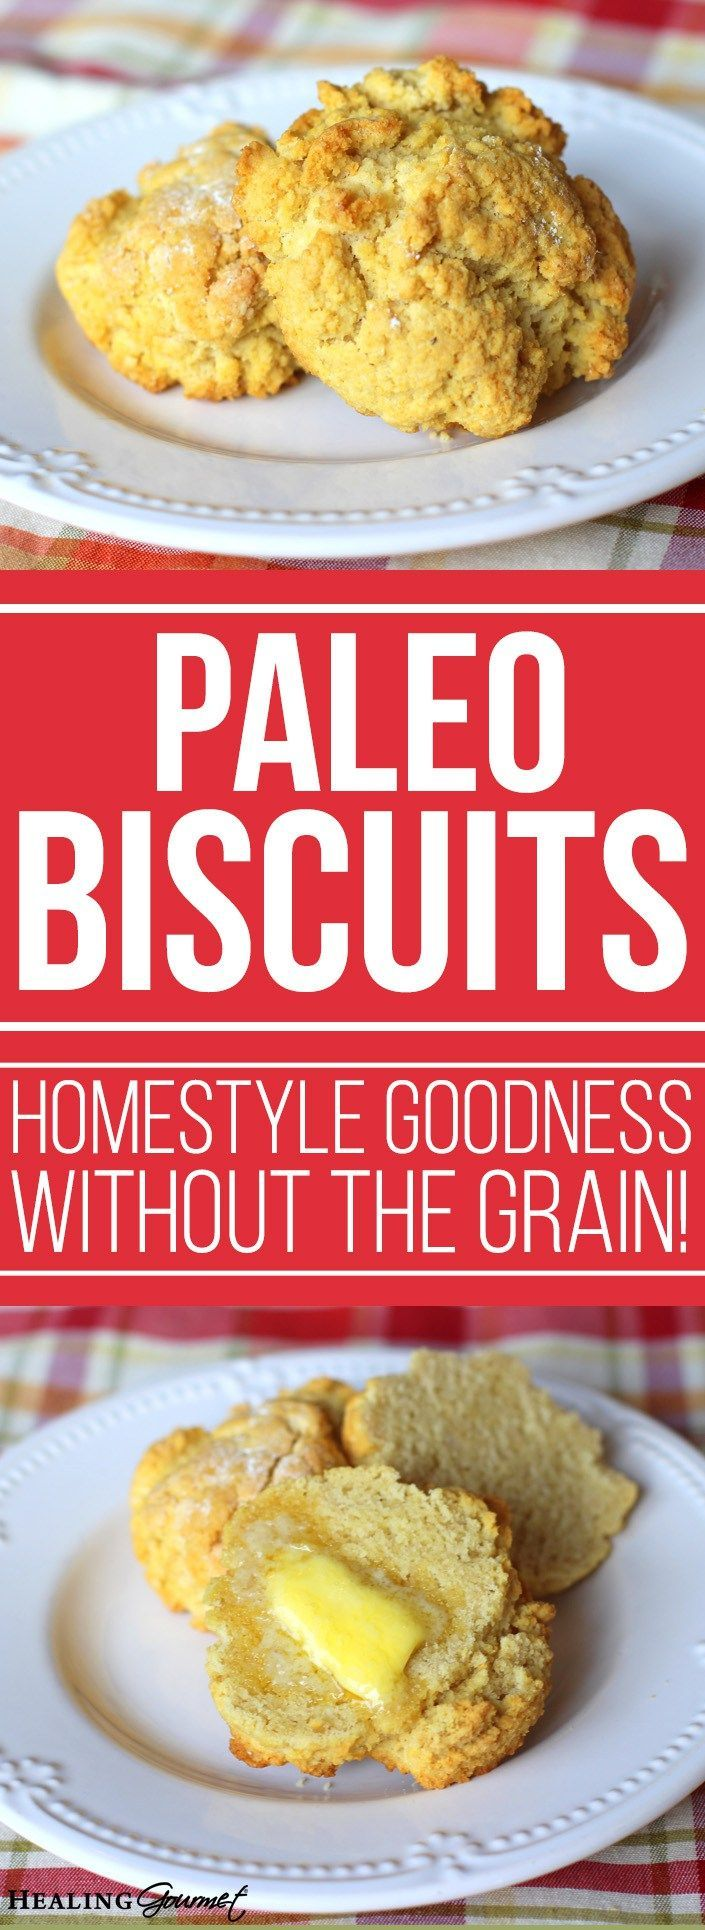 Looking for the perfect Paleo biscuits for a lazy weekend breakfast? This quick recipe rivals the traditional and can be on the table in just 30 minutes!